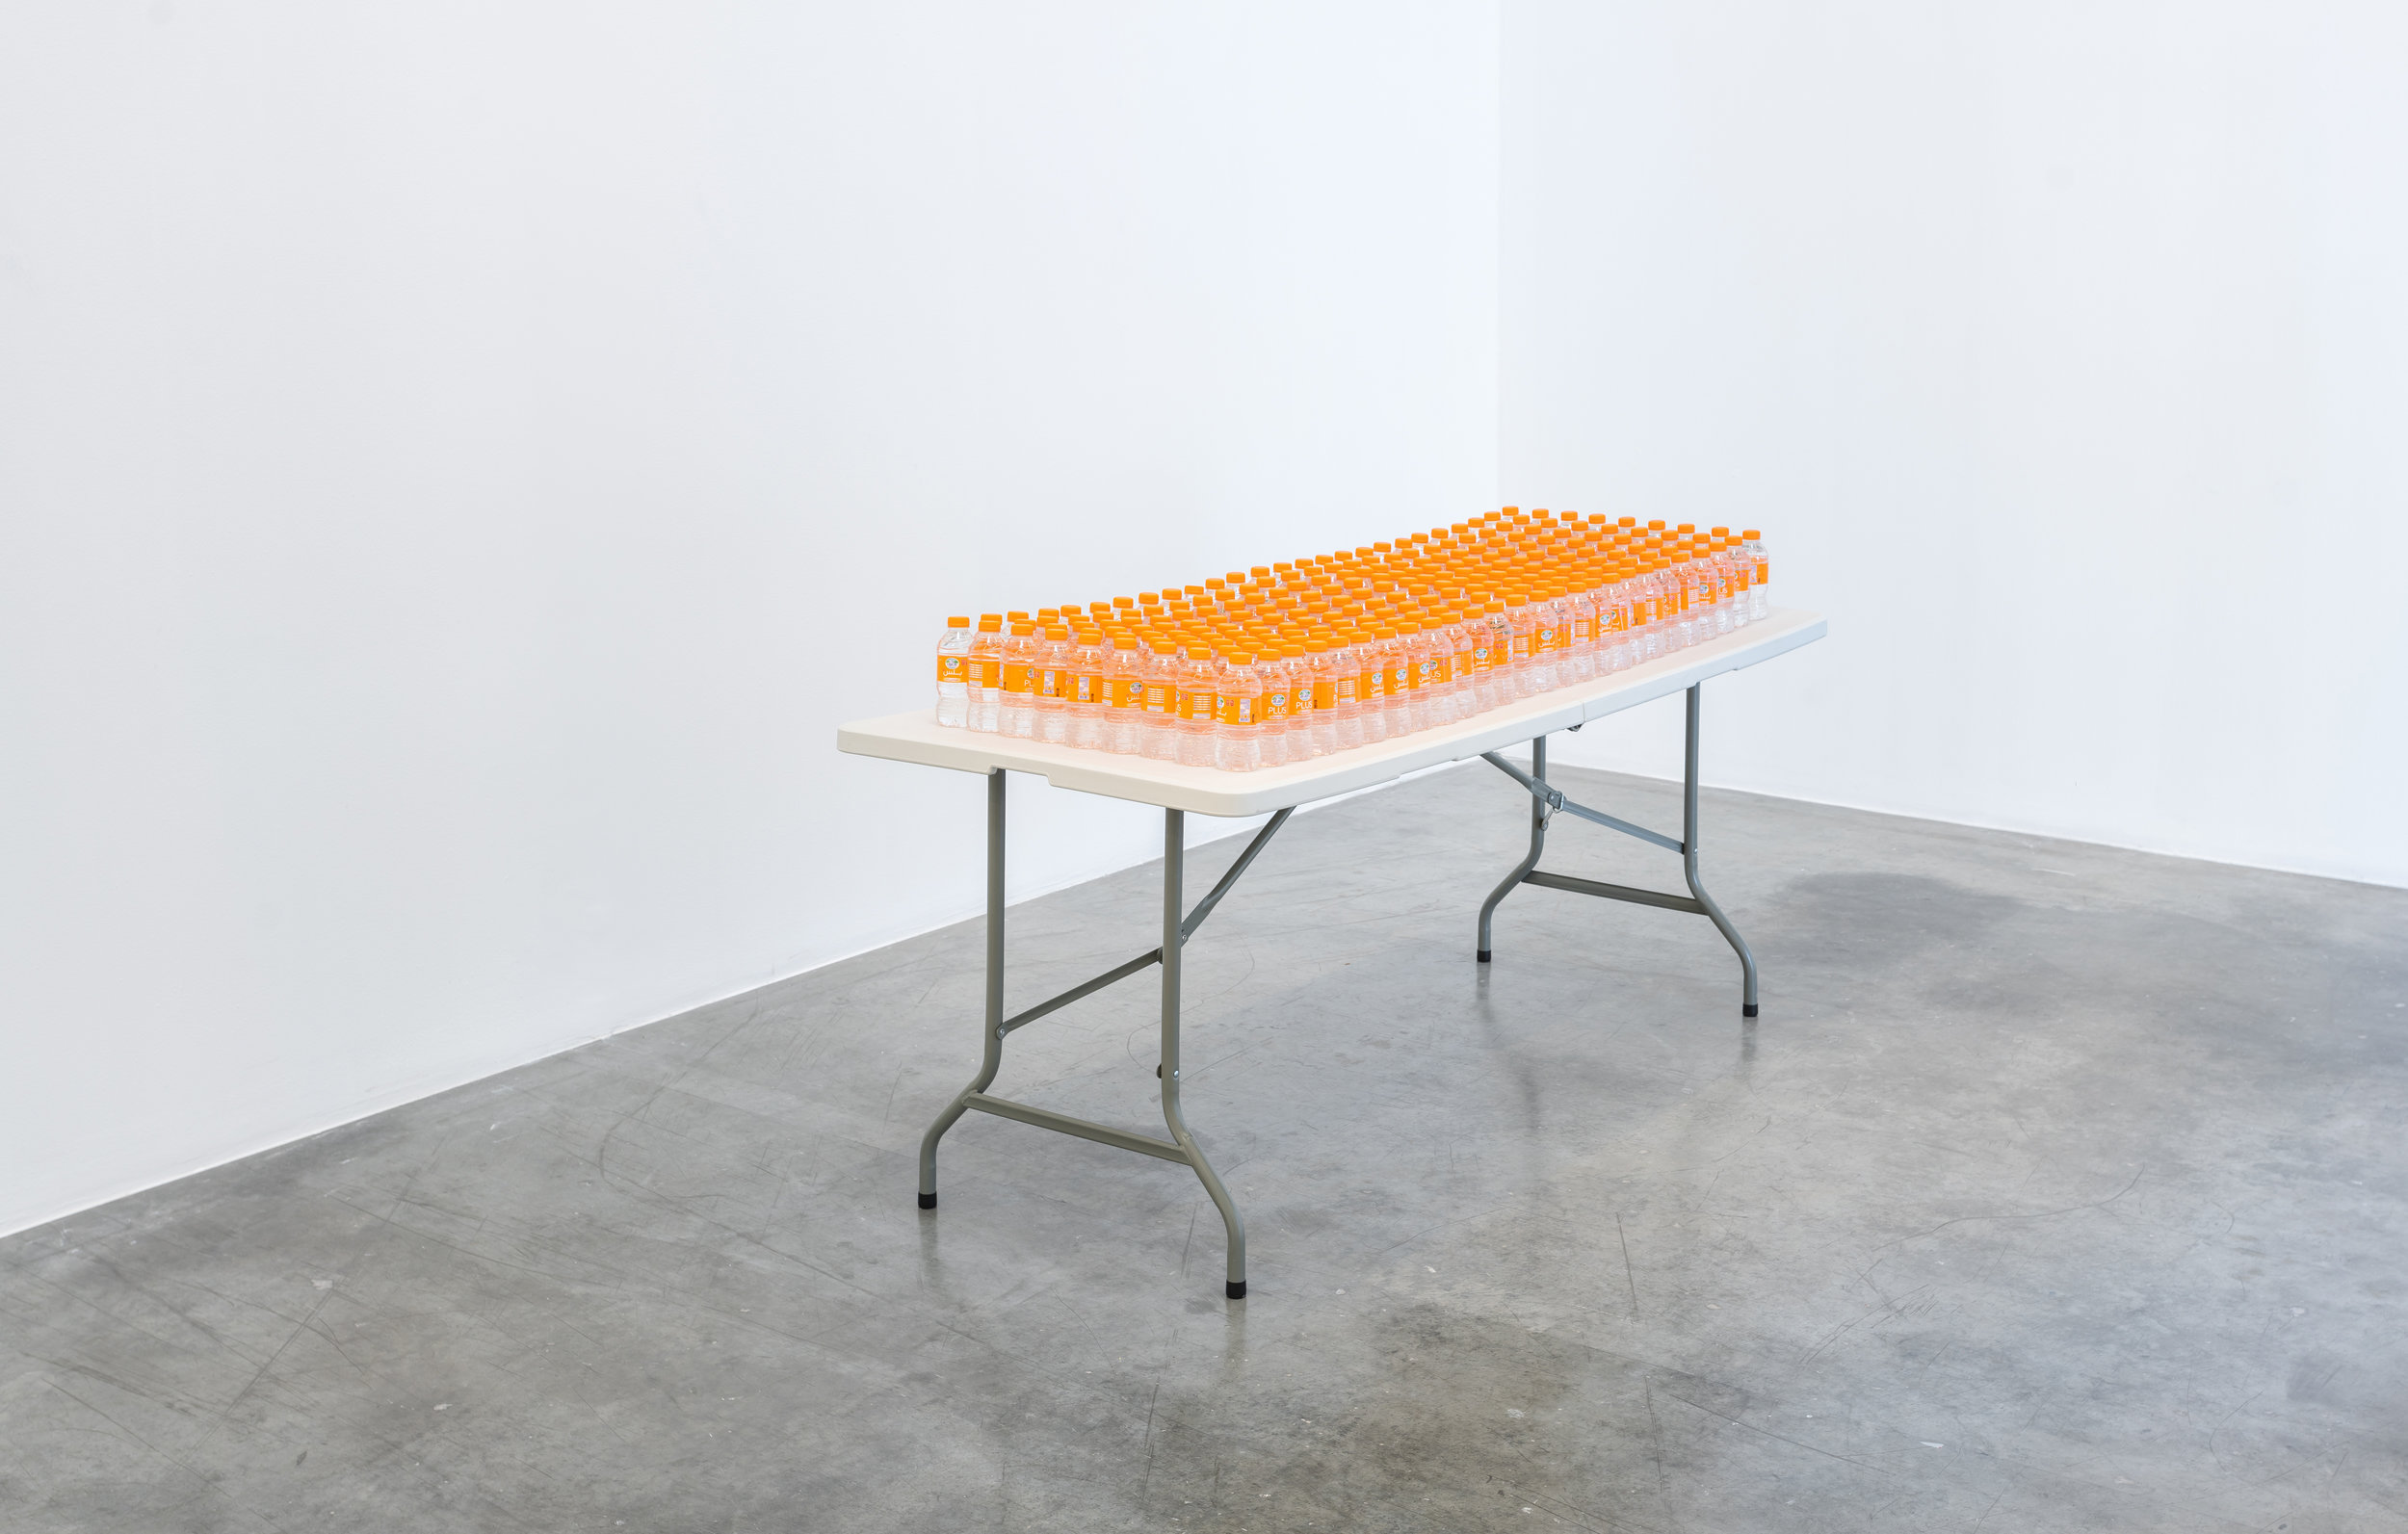 SUNSHINE, 2018, water bottles, table, Al Ain Vitamin D water bottles on a plastic folding table, dimensions variable. Image courtesy of the artist and Grey Noise.